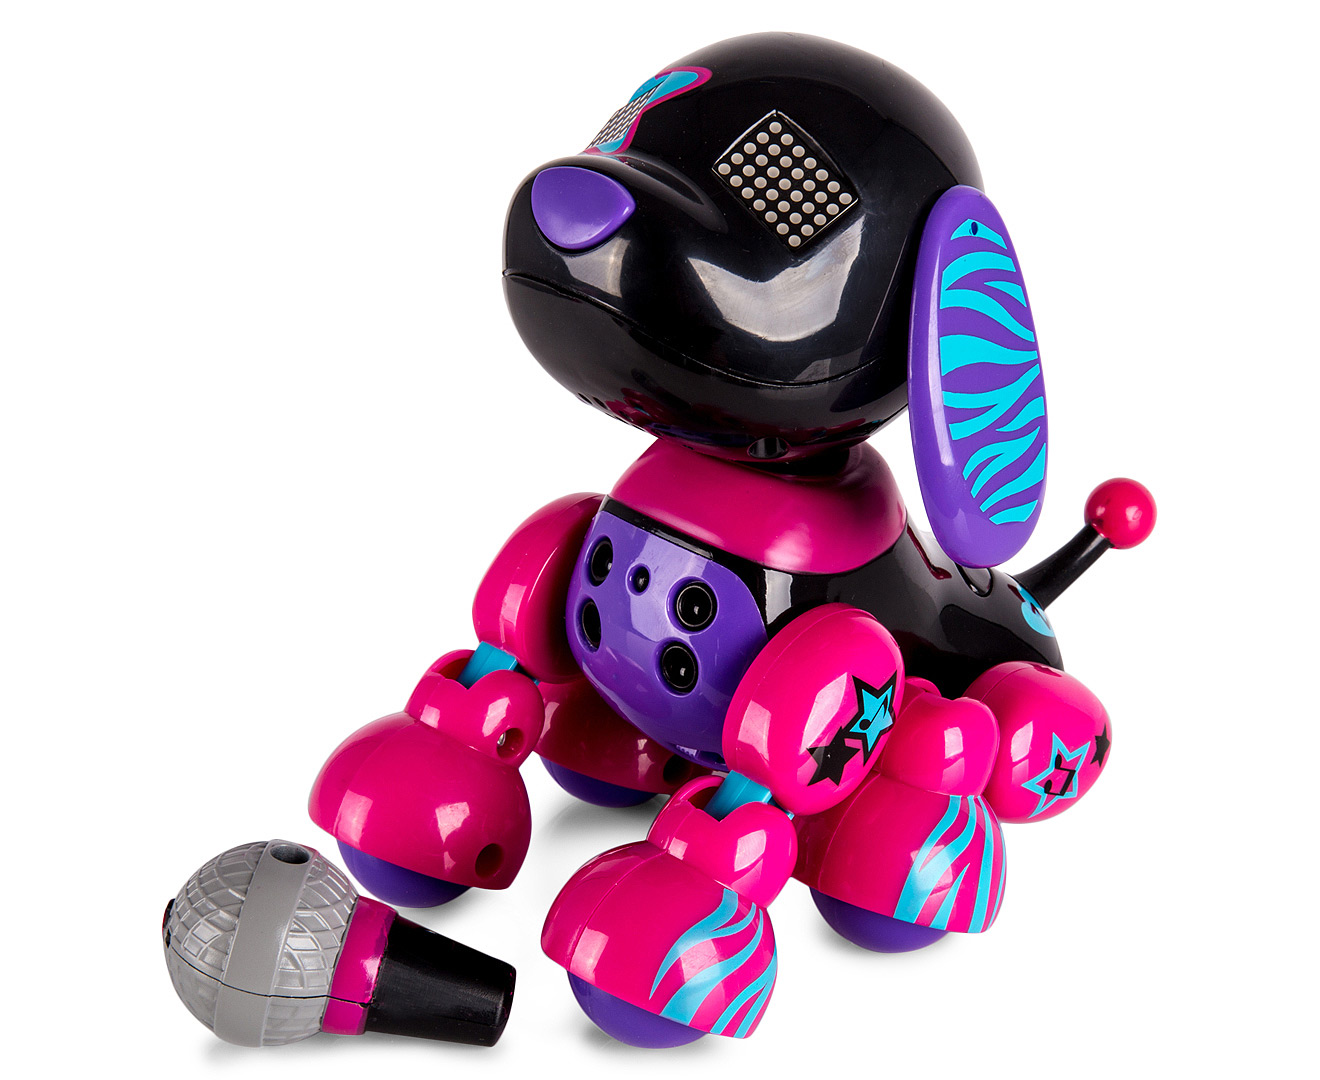 Zoomer Zuppies Interactive Robot